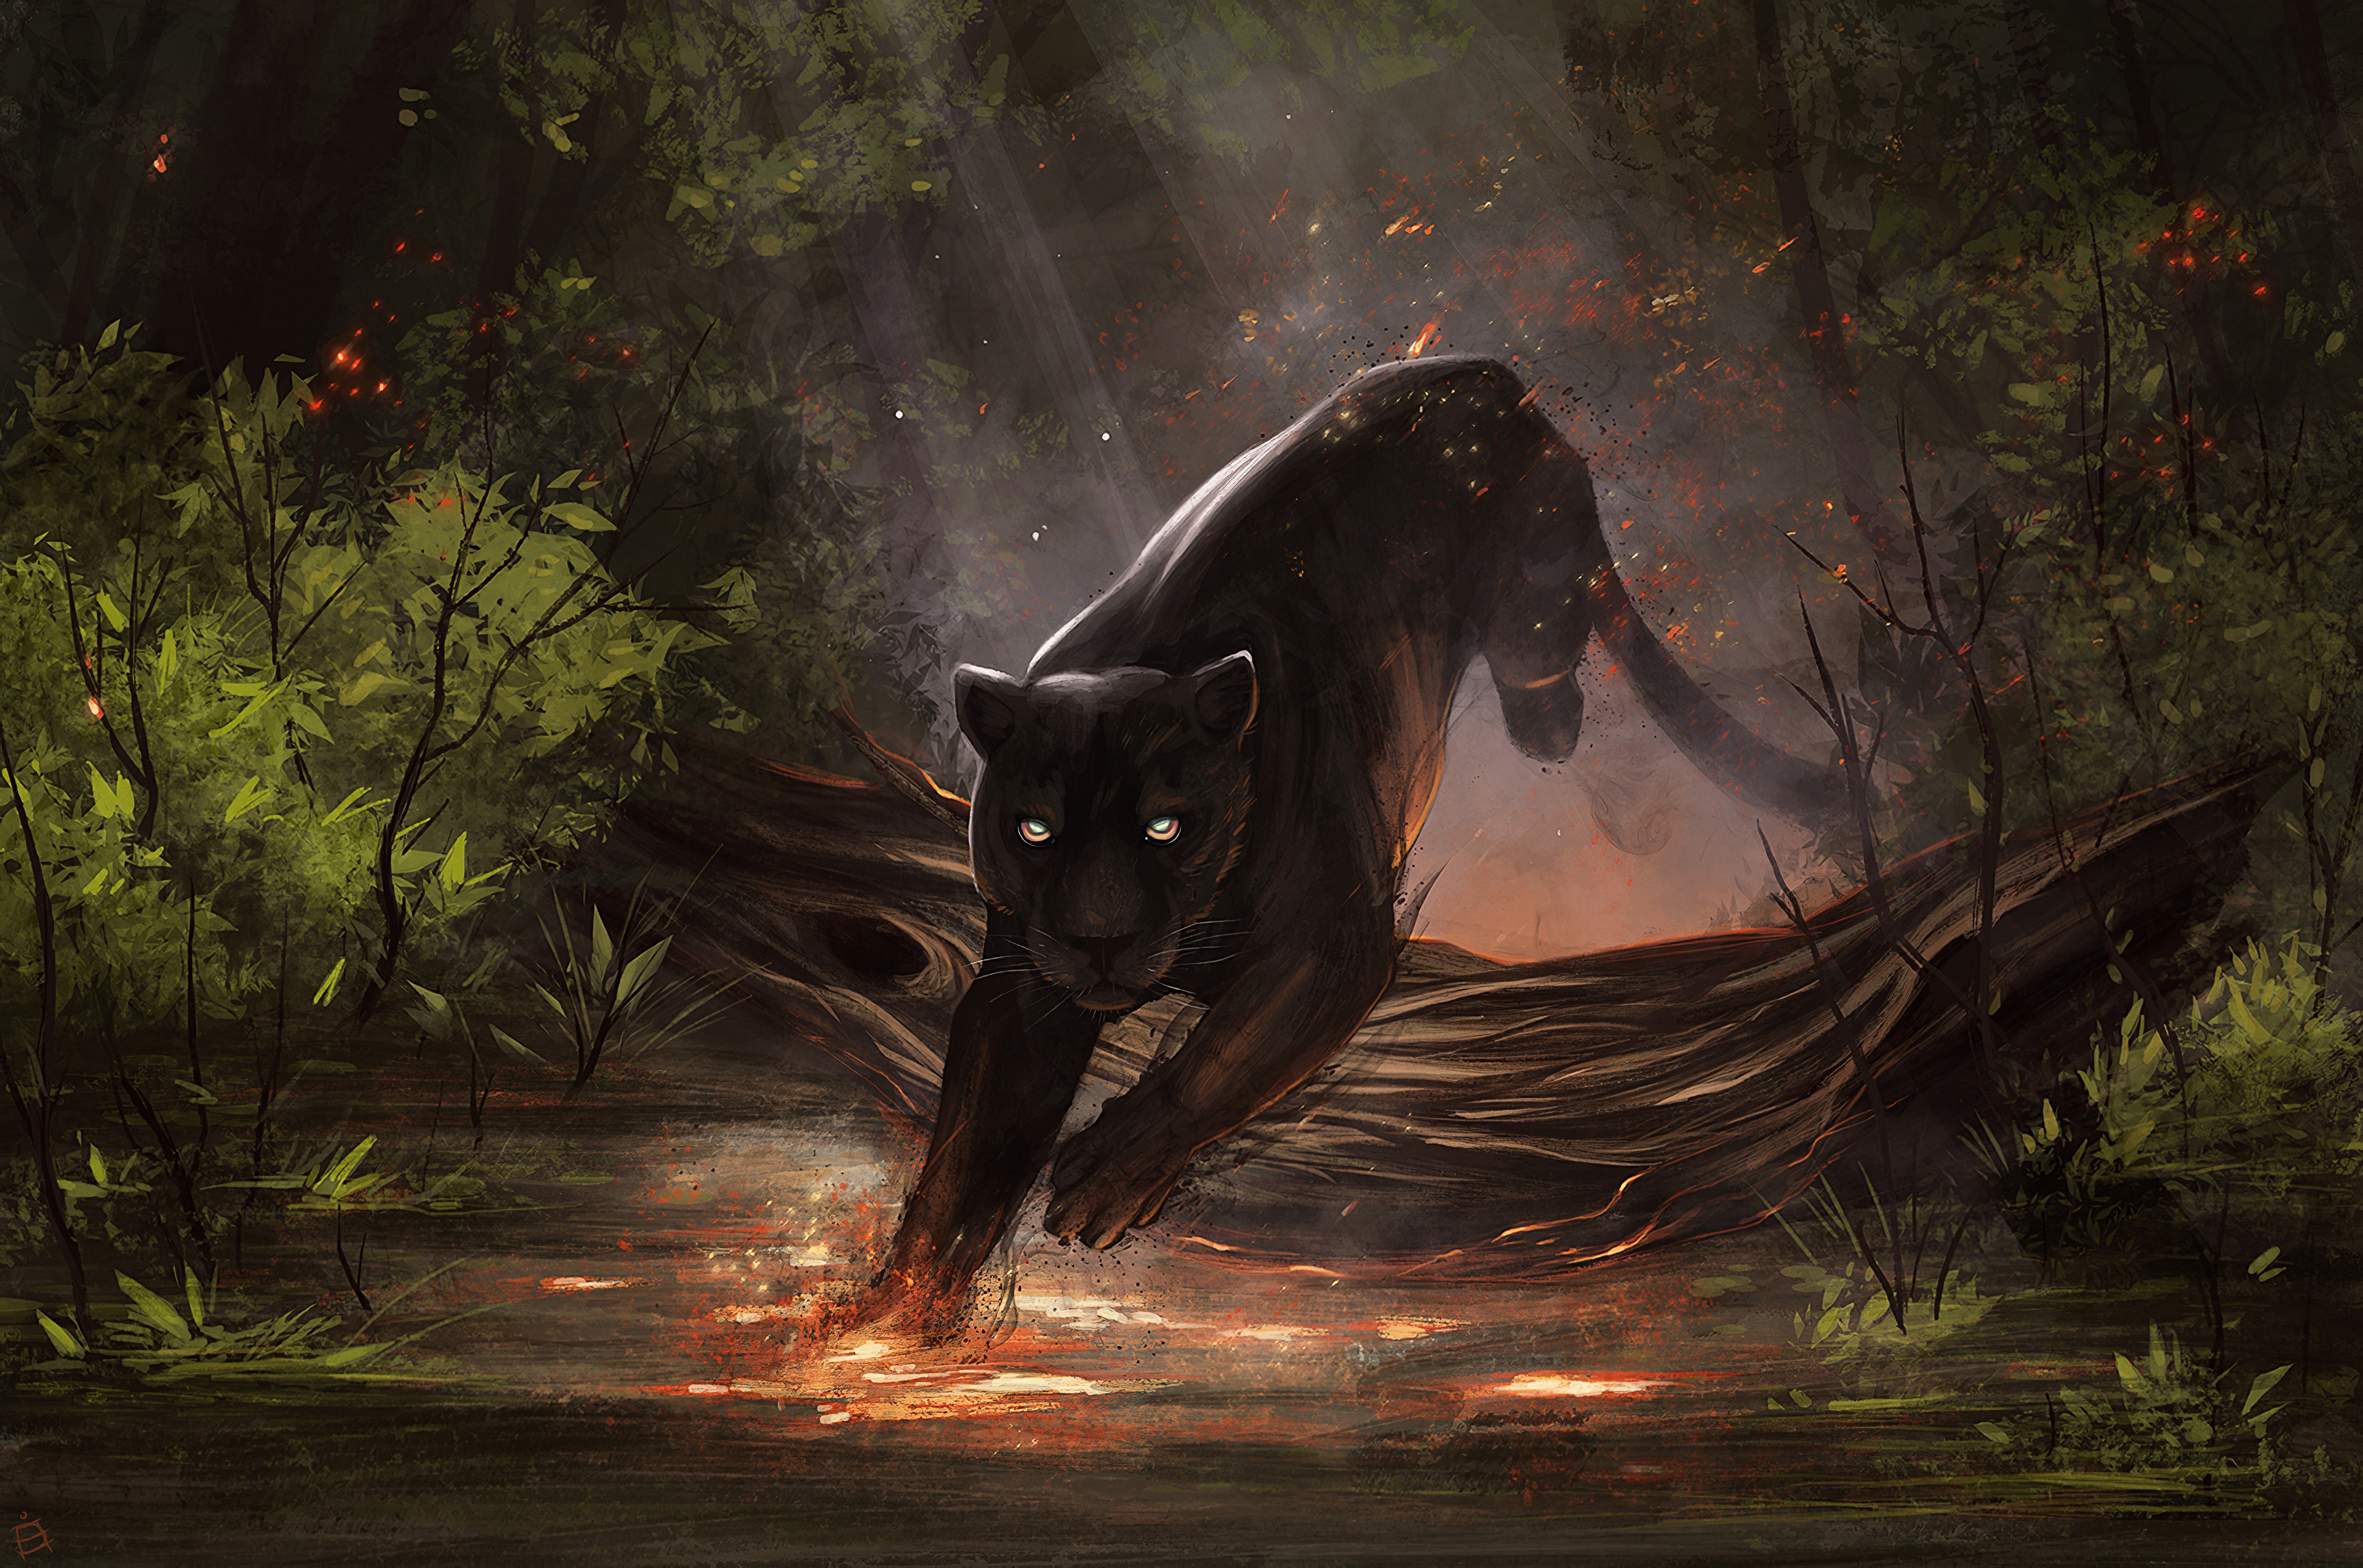 2048x1152 Jaguar Black Cat 2048x1152 Resolution Hd 4k Wallpapers Images Backgrounds Photos And Pictures